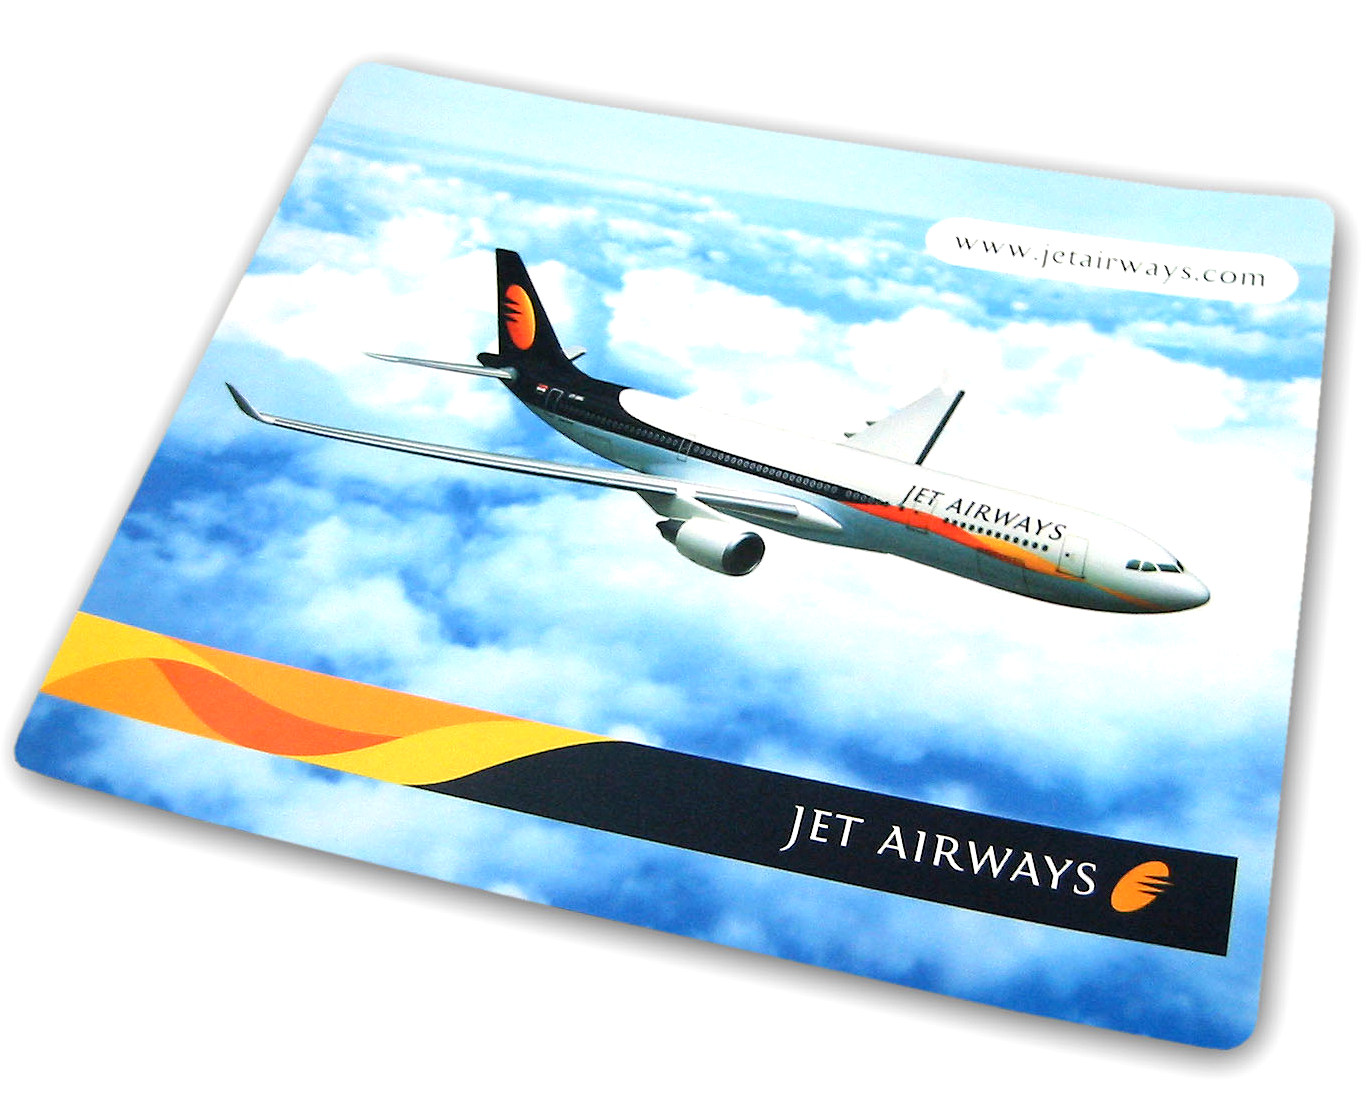 Mouse Pad Sublimation Printing - Customized Mousepads